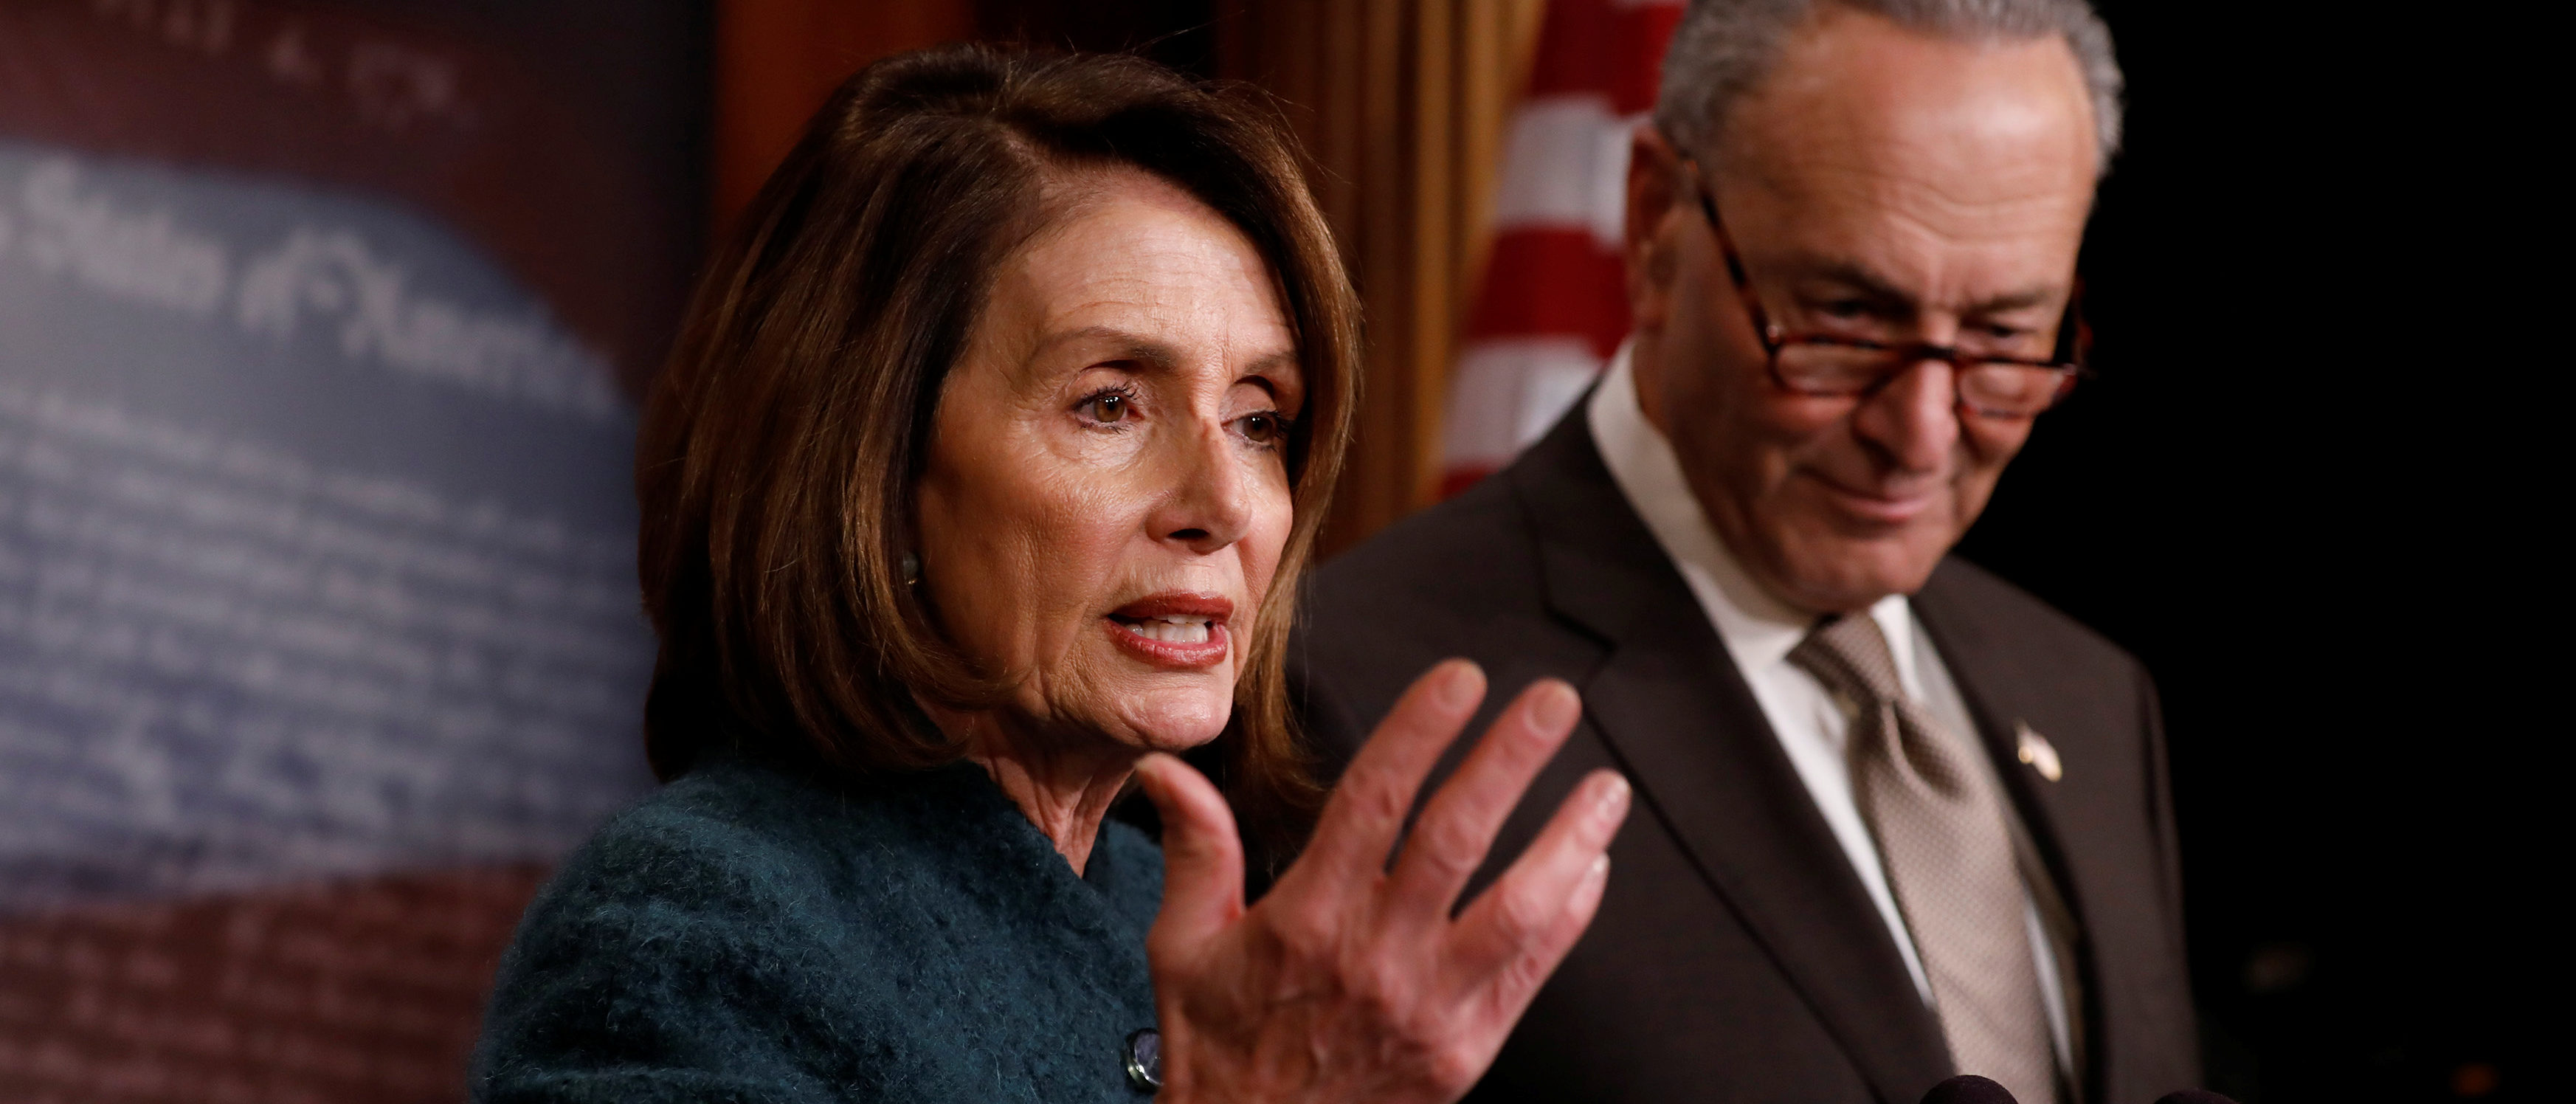 House Minority Leader Nancy Pelosi, accompanied by Senate Minority Leader Chuck Schumer, speaks at a news conference about the omnibus spending bill moving through Congress on Capitol Hill in Washington, U.S., March 22, 2018. REUTERS/Aaron P. Bernstein - RC1DFD3F0250